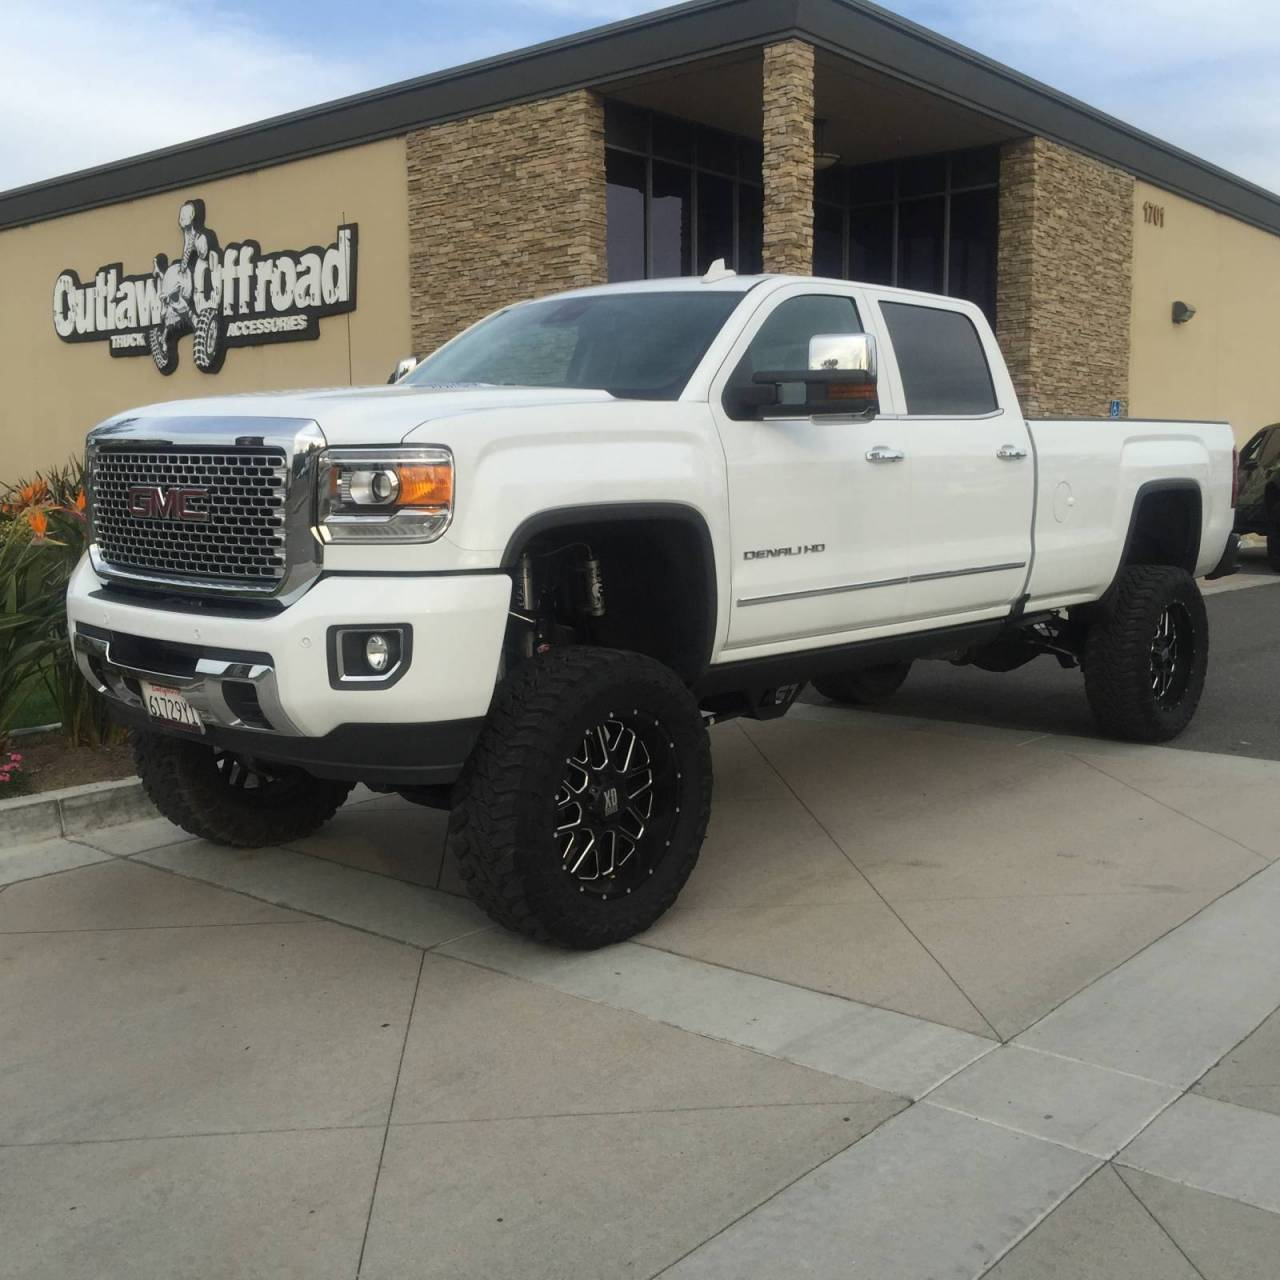 2016 gmc sierra denali 2500hd 8 photos suspension 10 12 cst lift